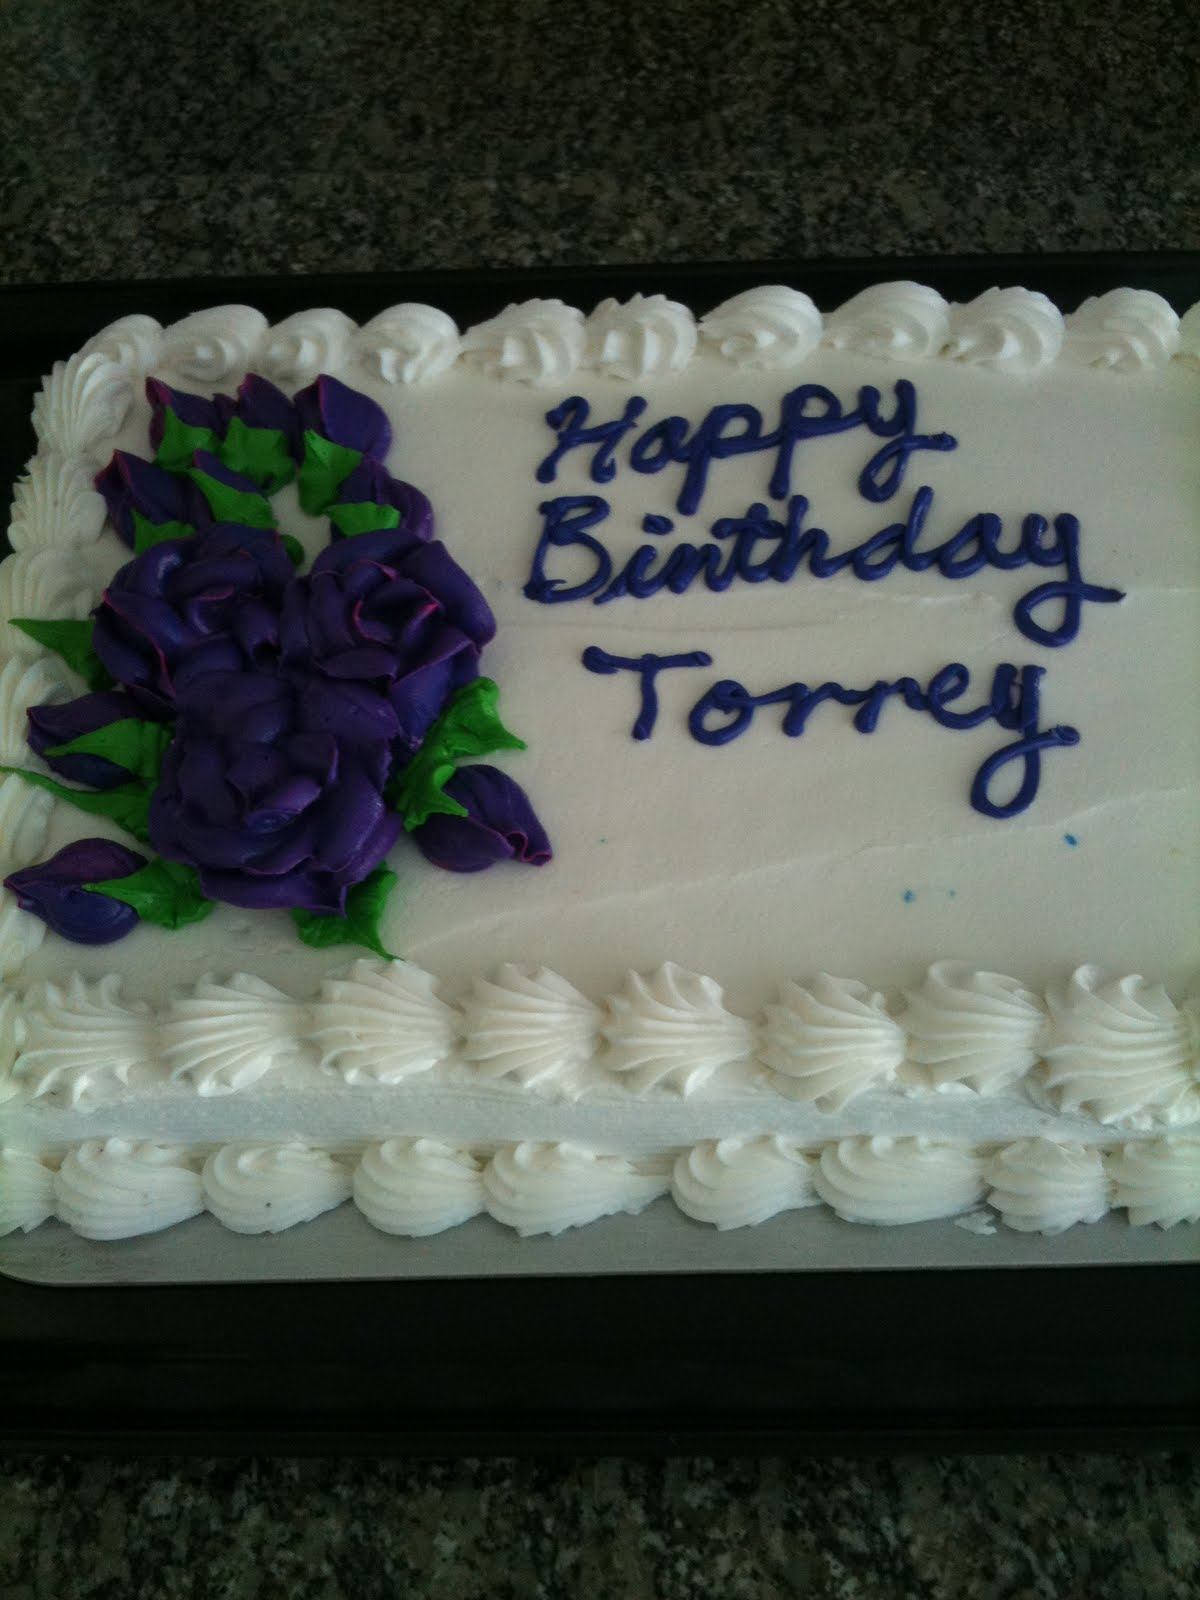 Torreys Blog Today I Got An Awesome Birthday Cake With Purple Flowers